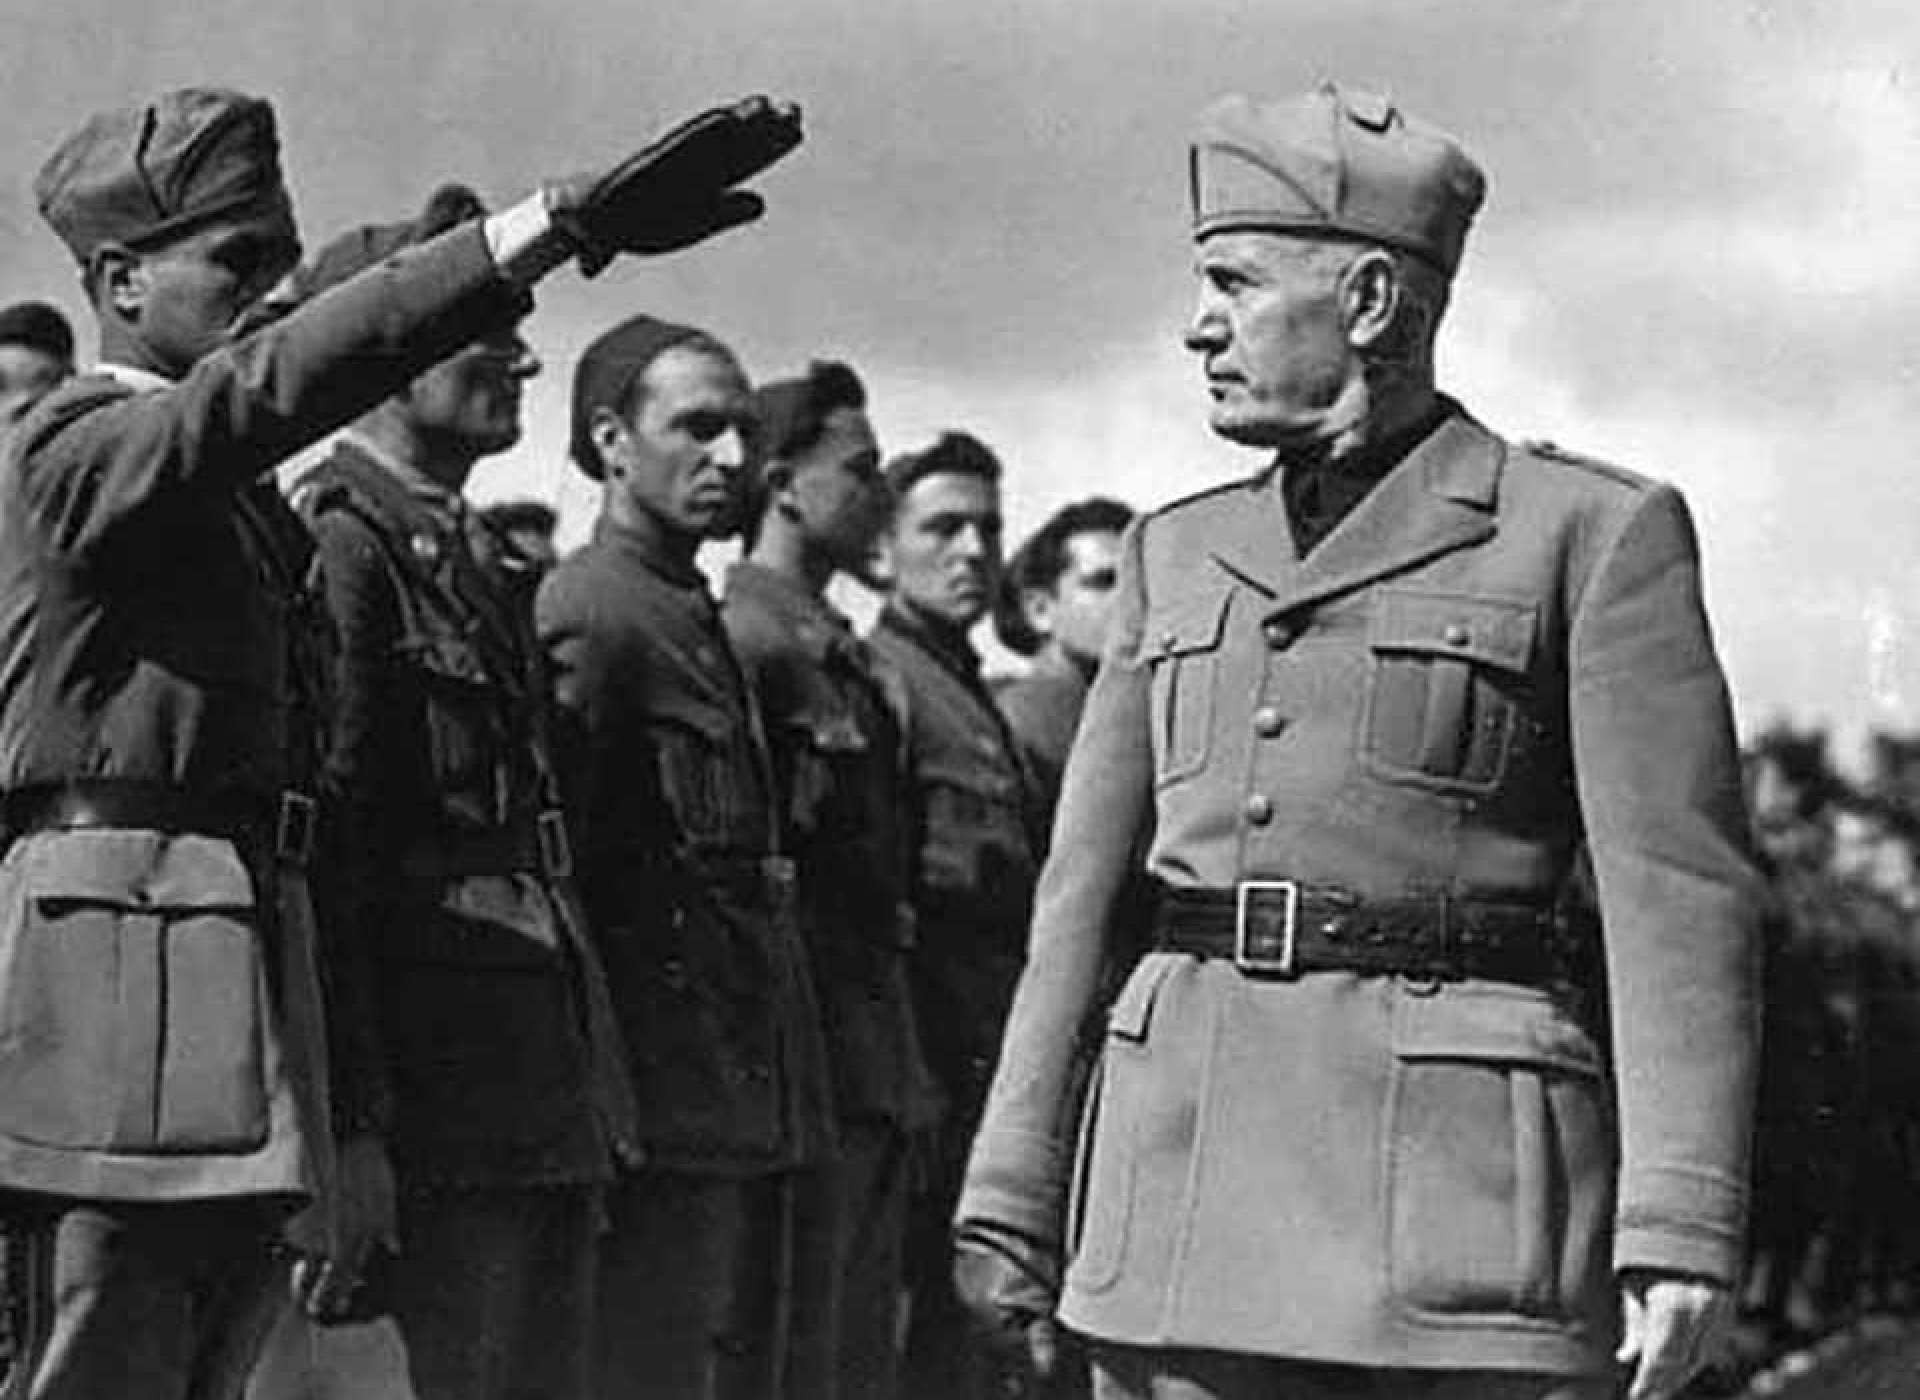 Mussolini Inspecting the Troops.